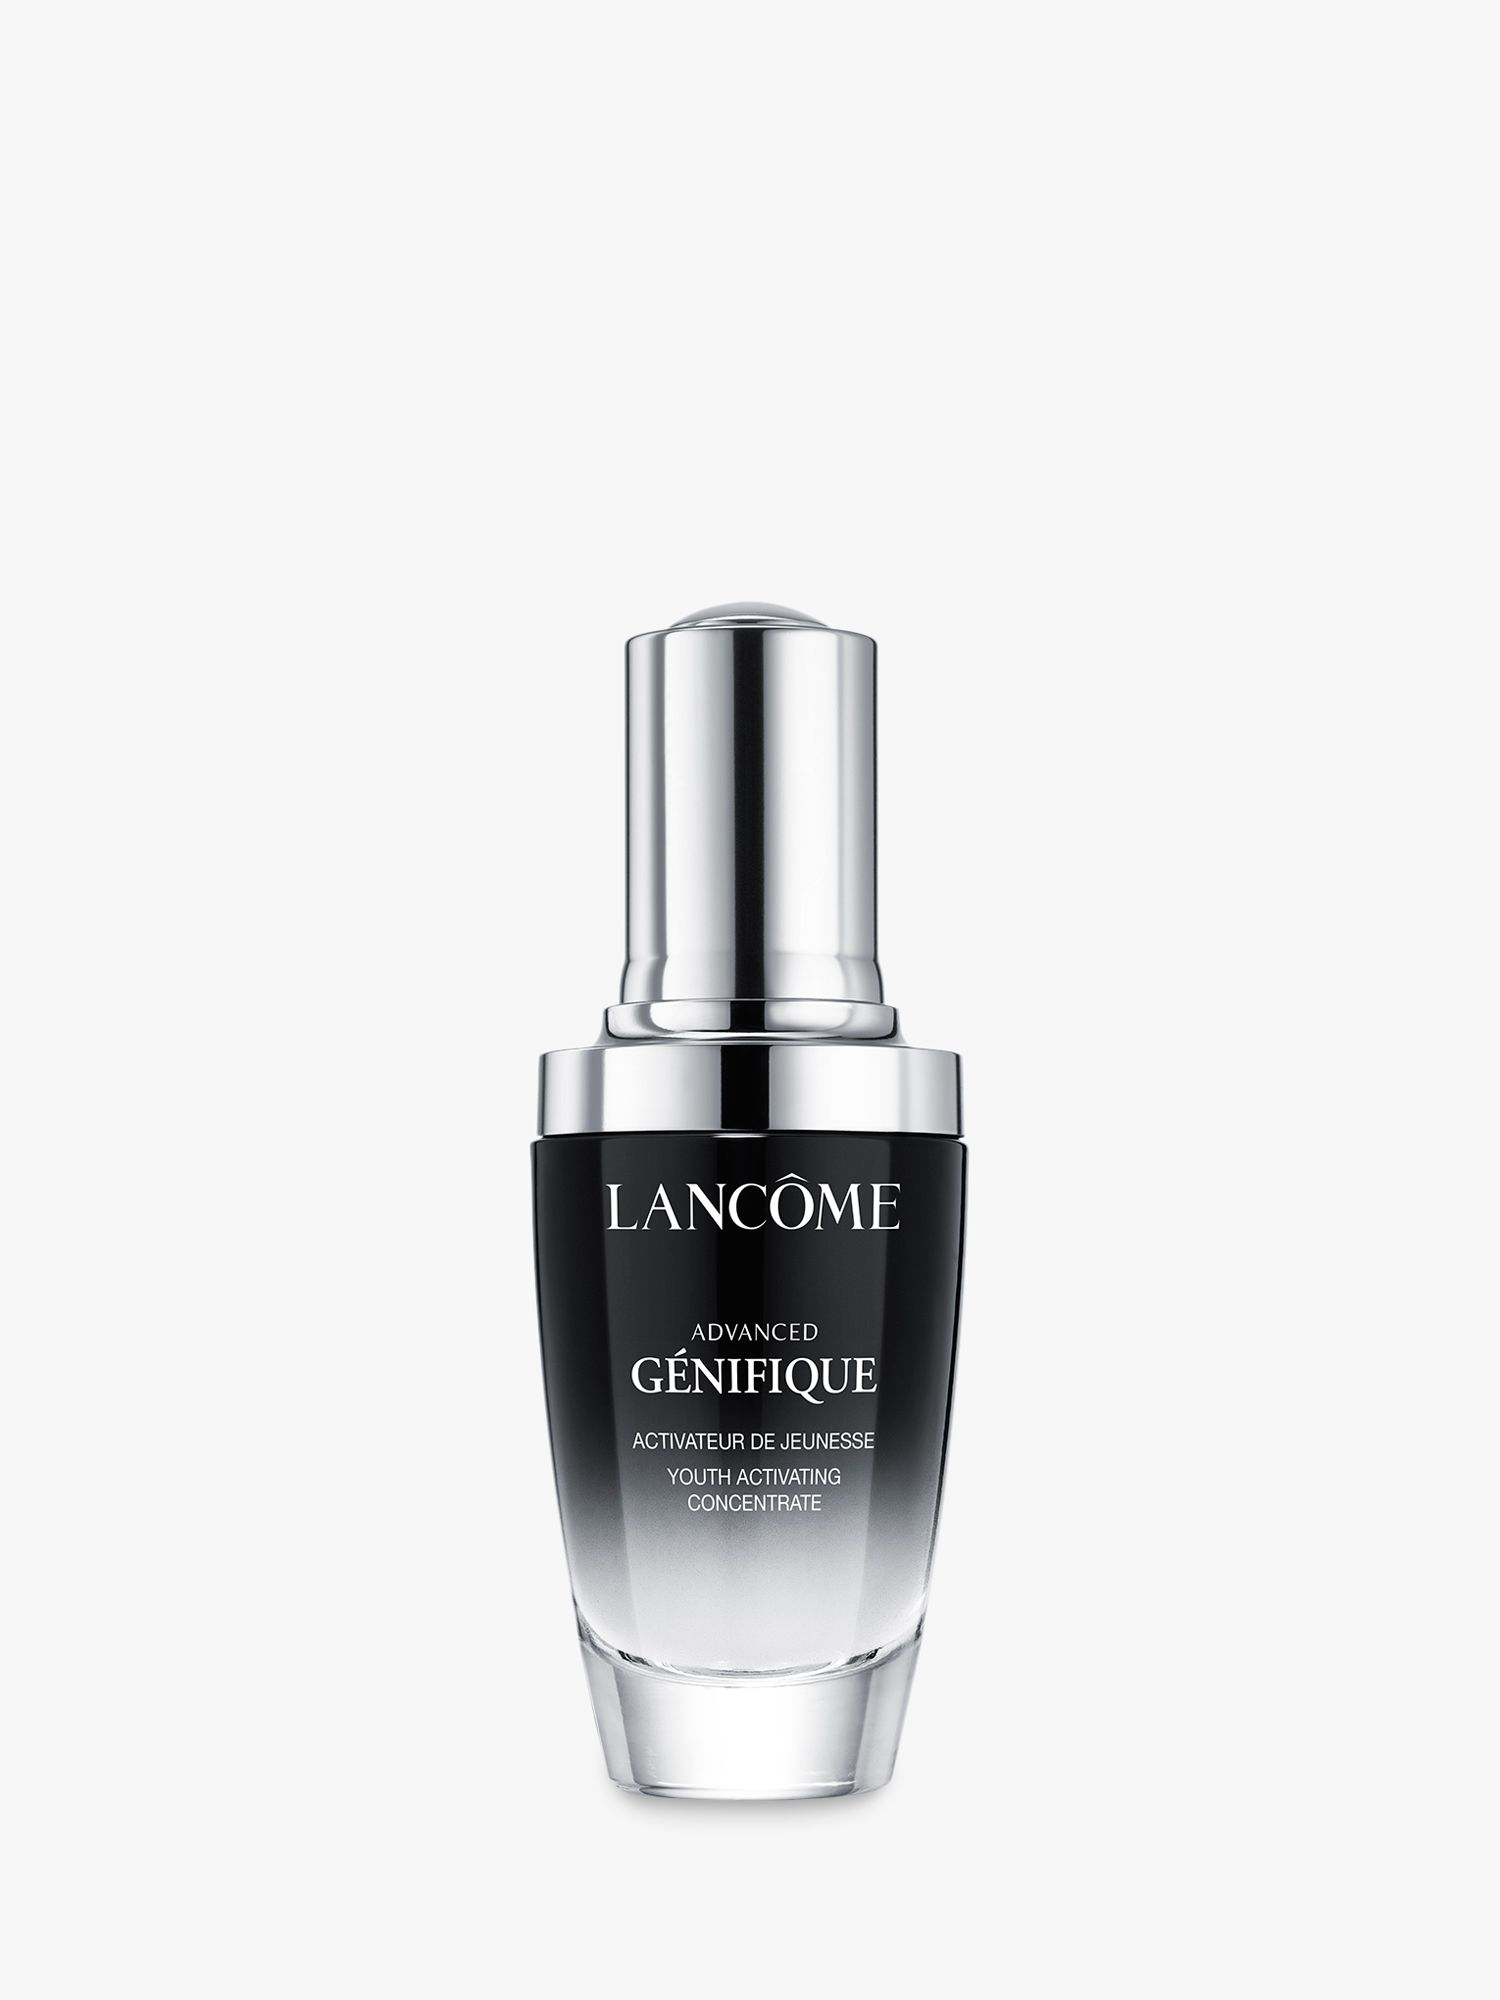 Lancome Lancôme Advanced Génifique Youth Activating Concentrate